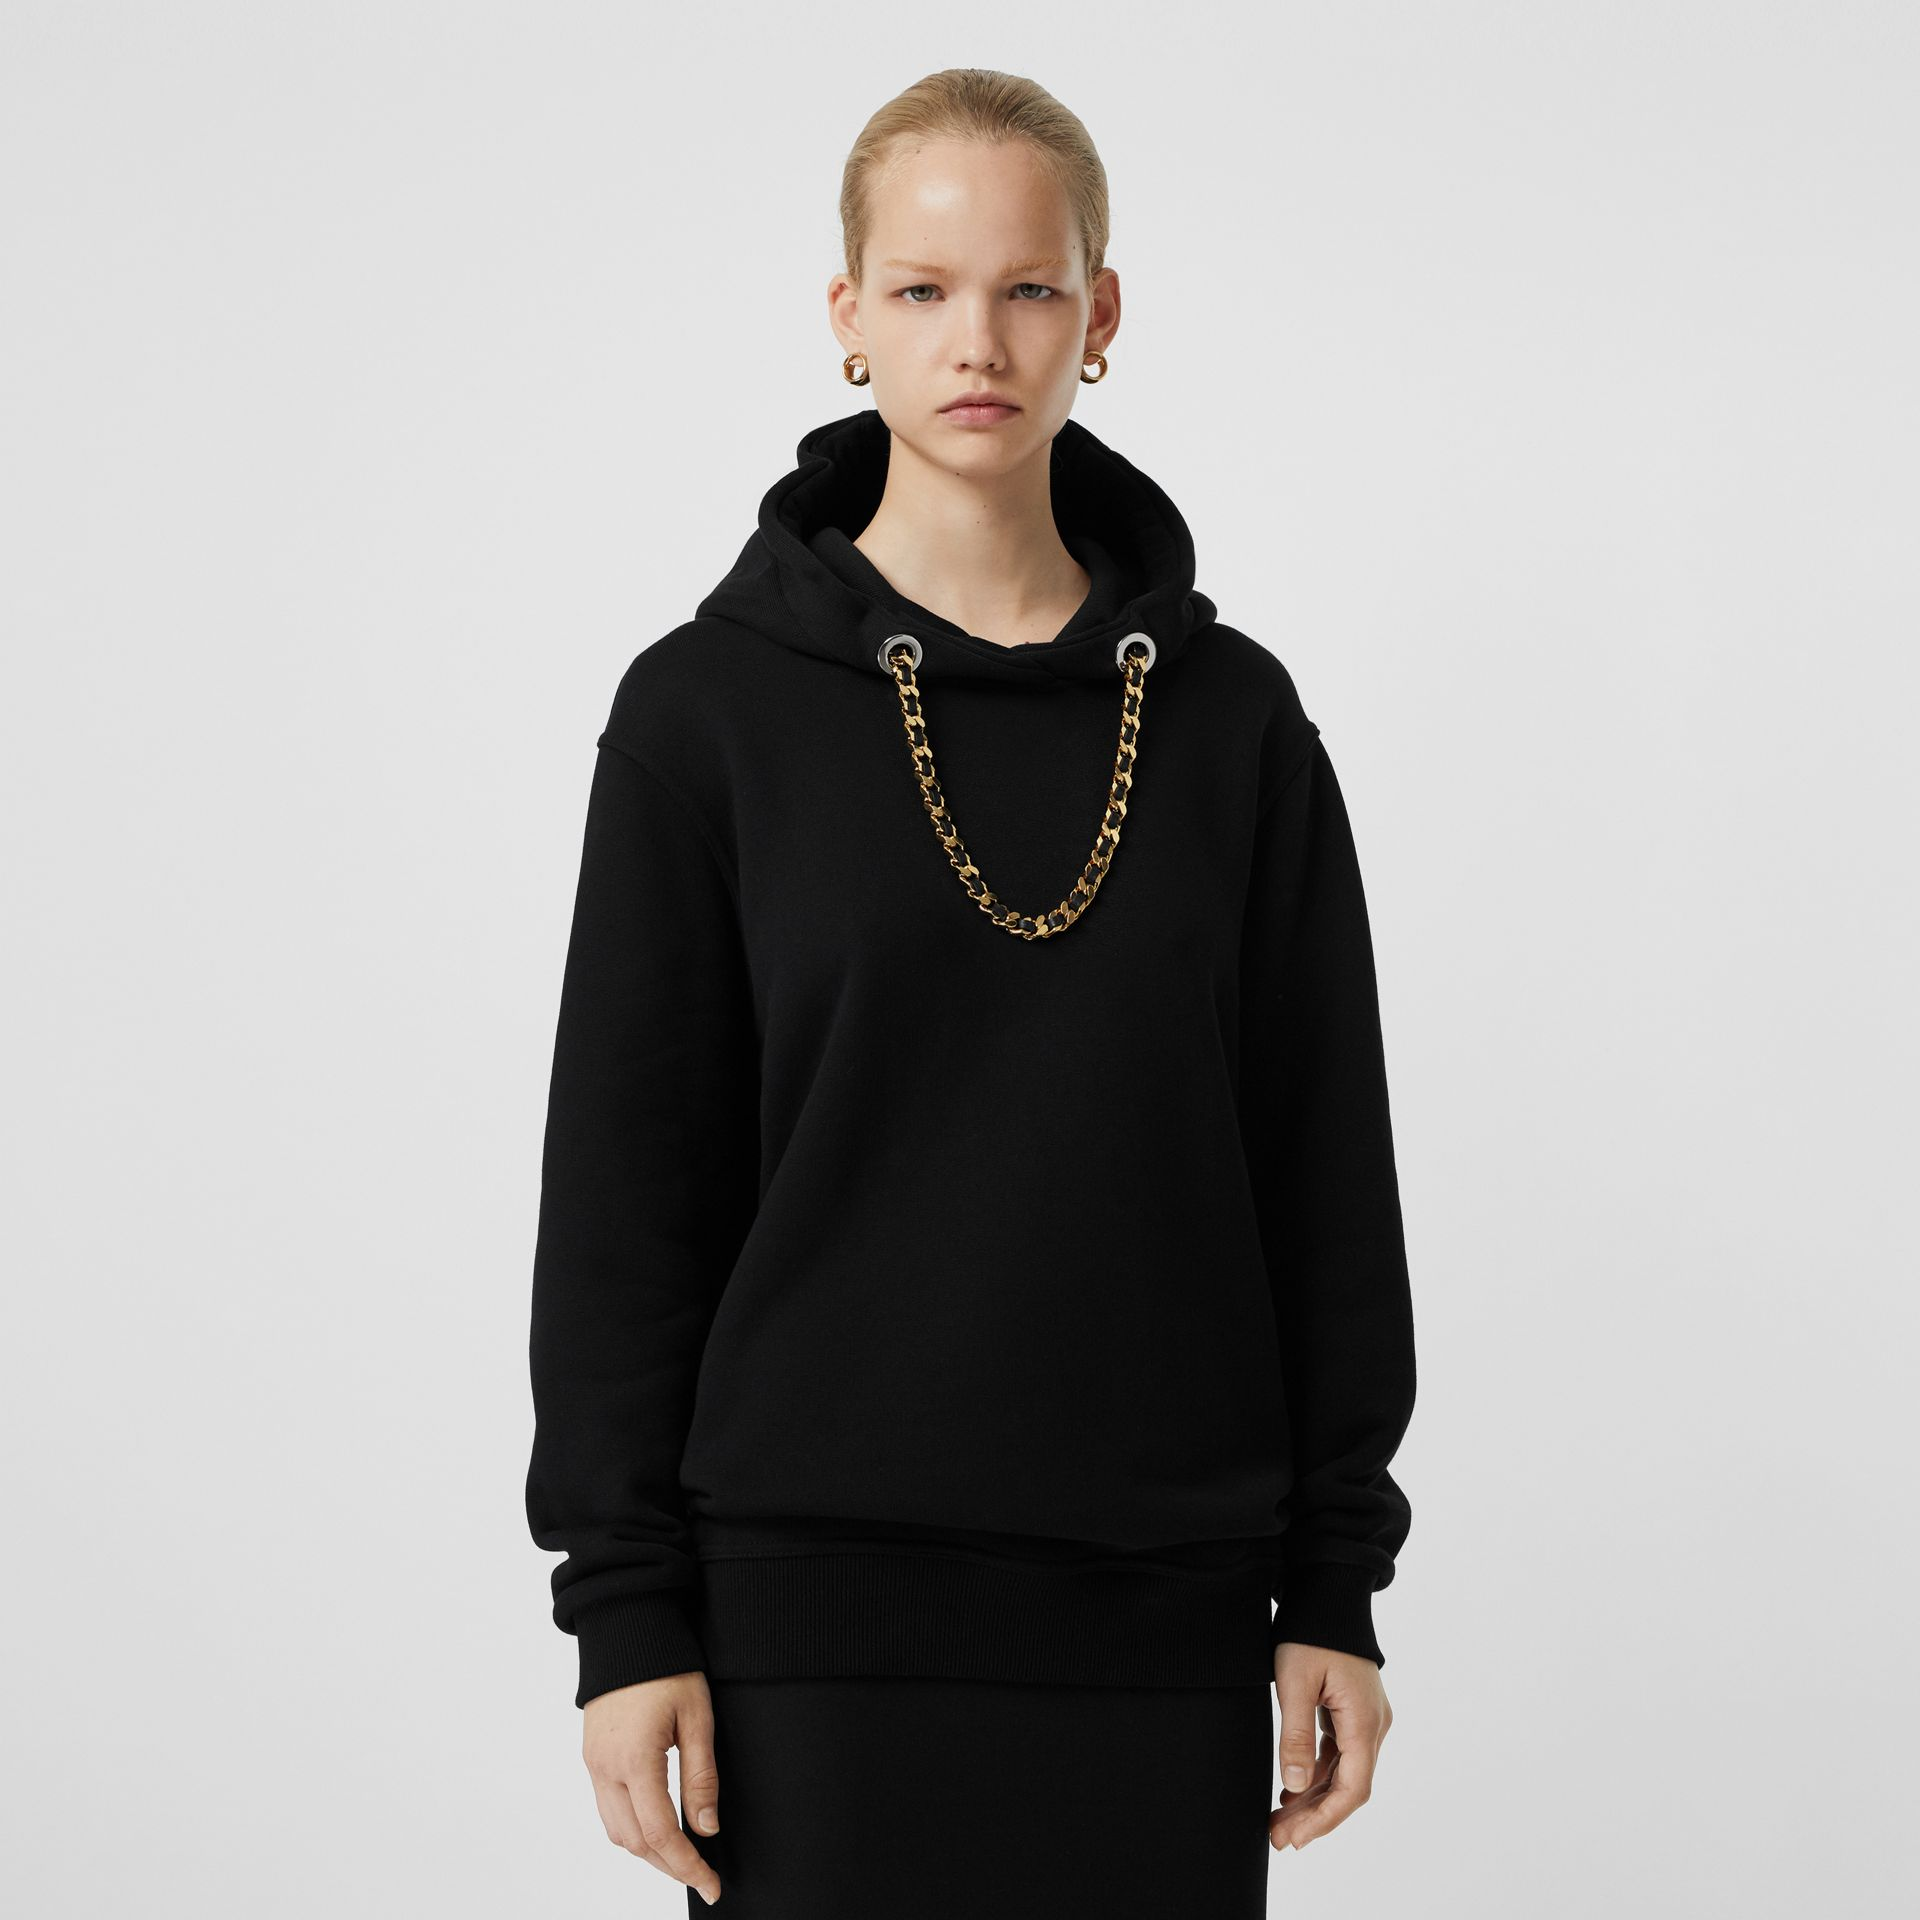 Chain Detail Hoodie in Black - Women | Burberry - gallery image 4